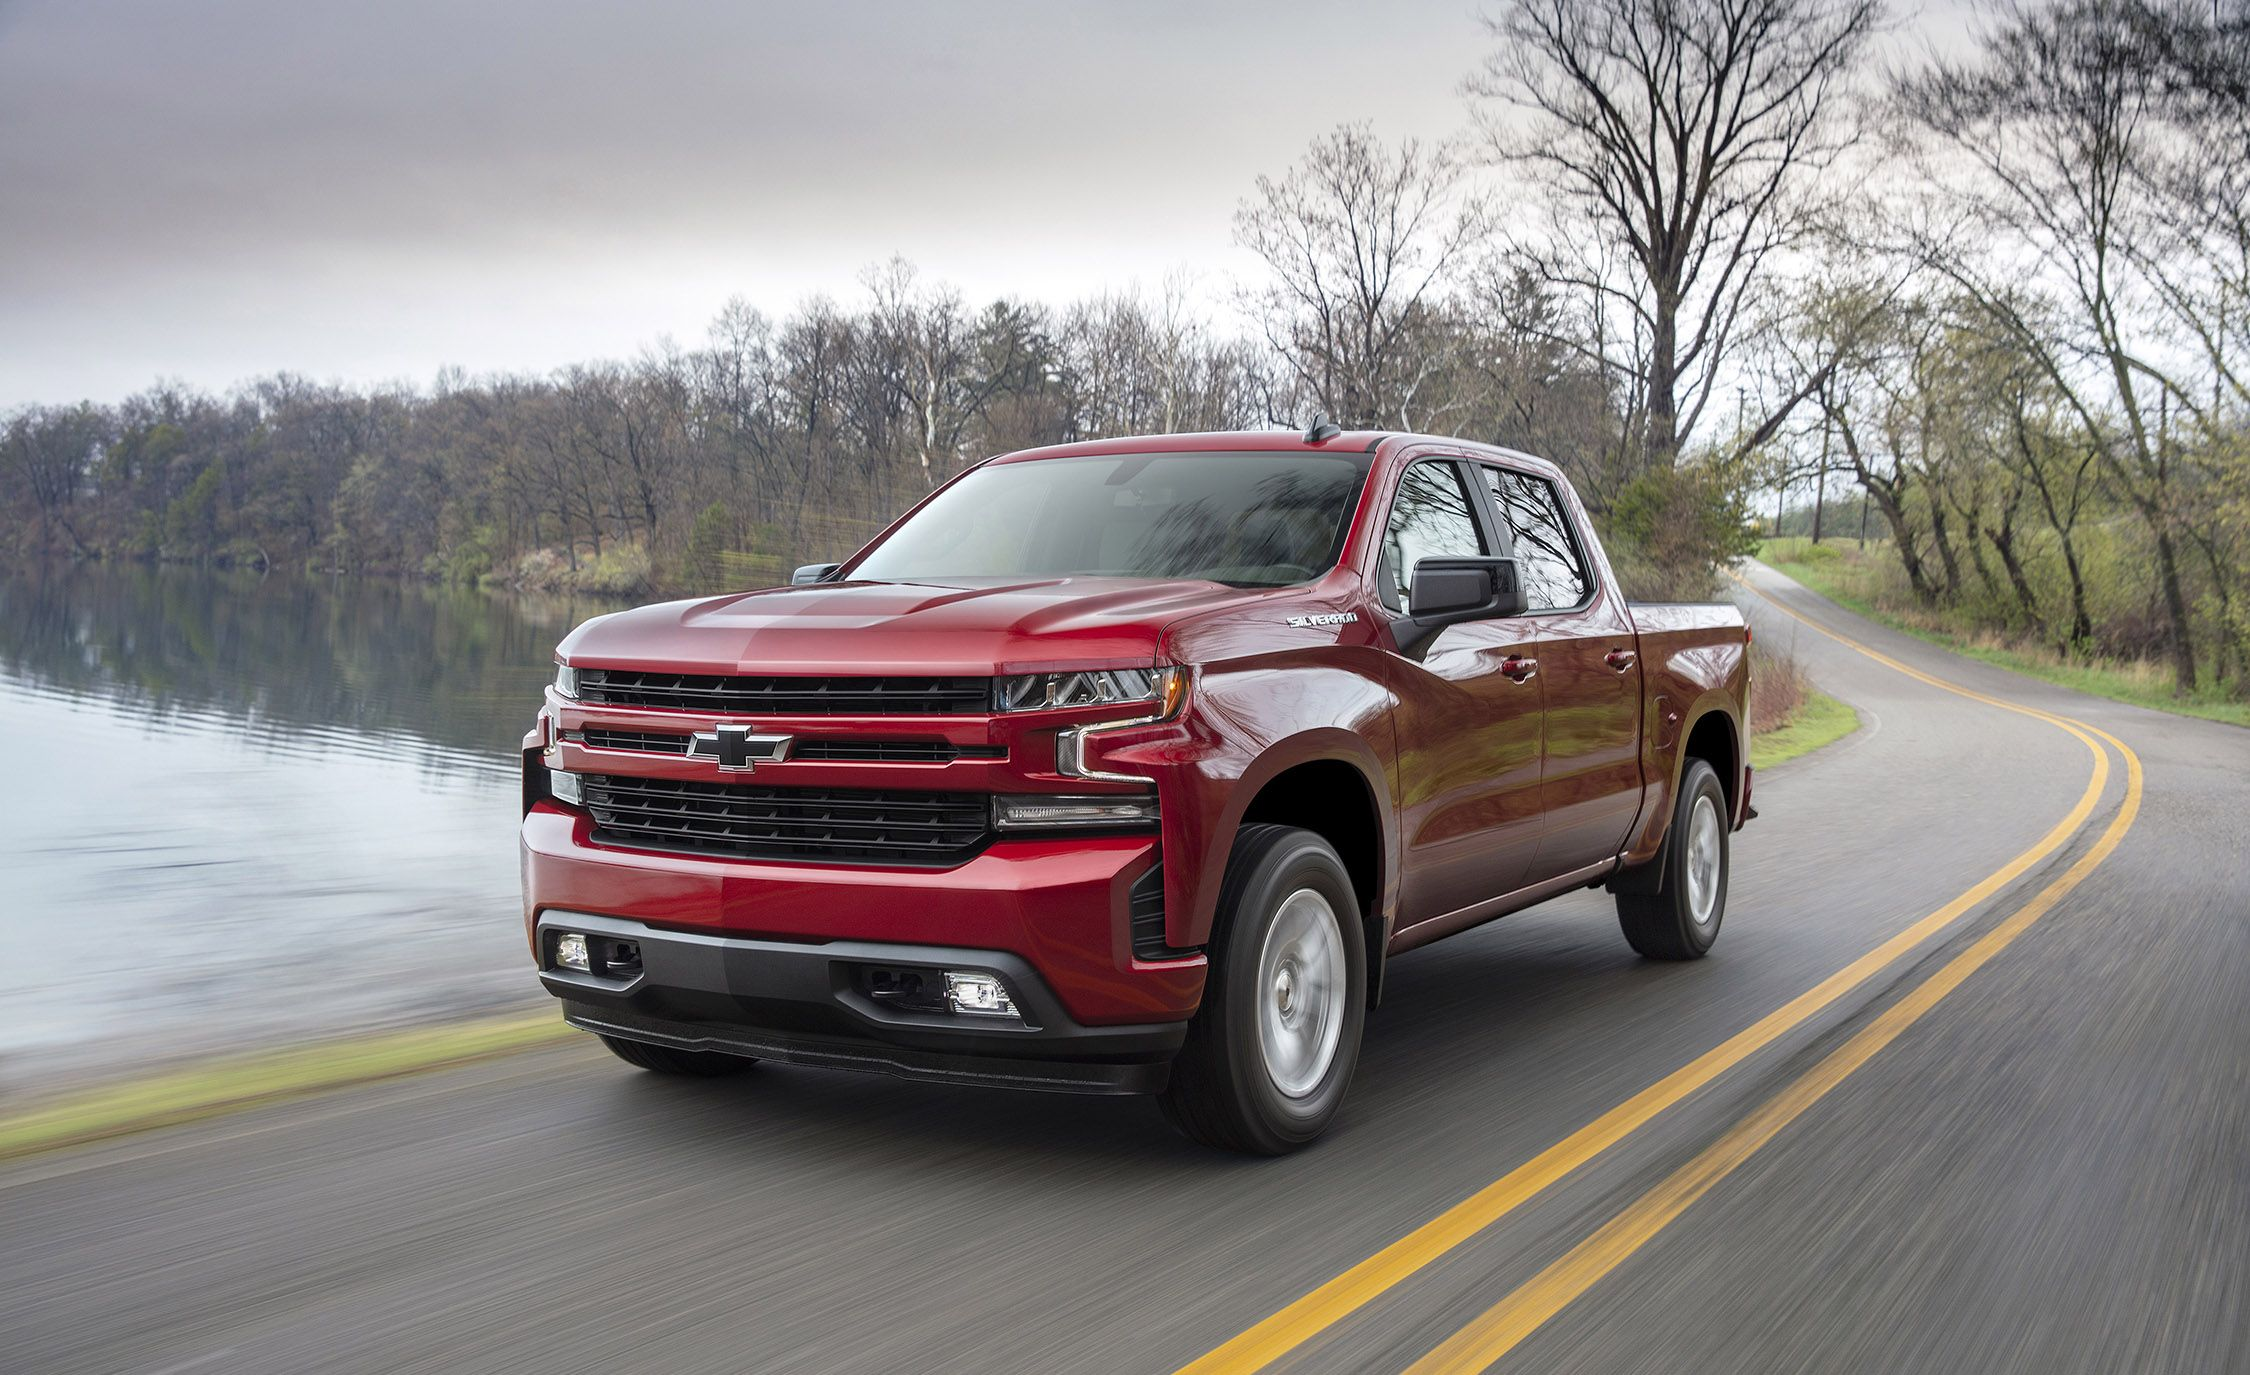 2019 chevrolet silverado 1500 driven longer lighter more fuel 2019 chevrolet silverado 1500 driven longer lighter more fuel efficient and extremely refined publicscrutiny Image collections